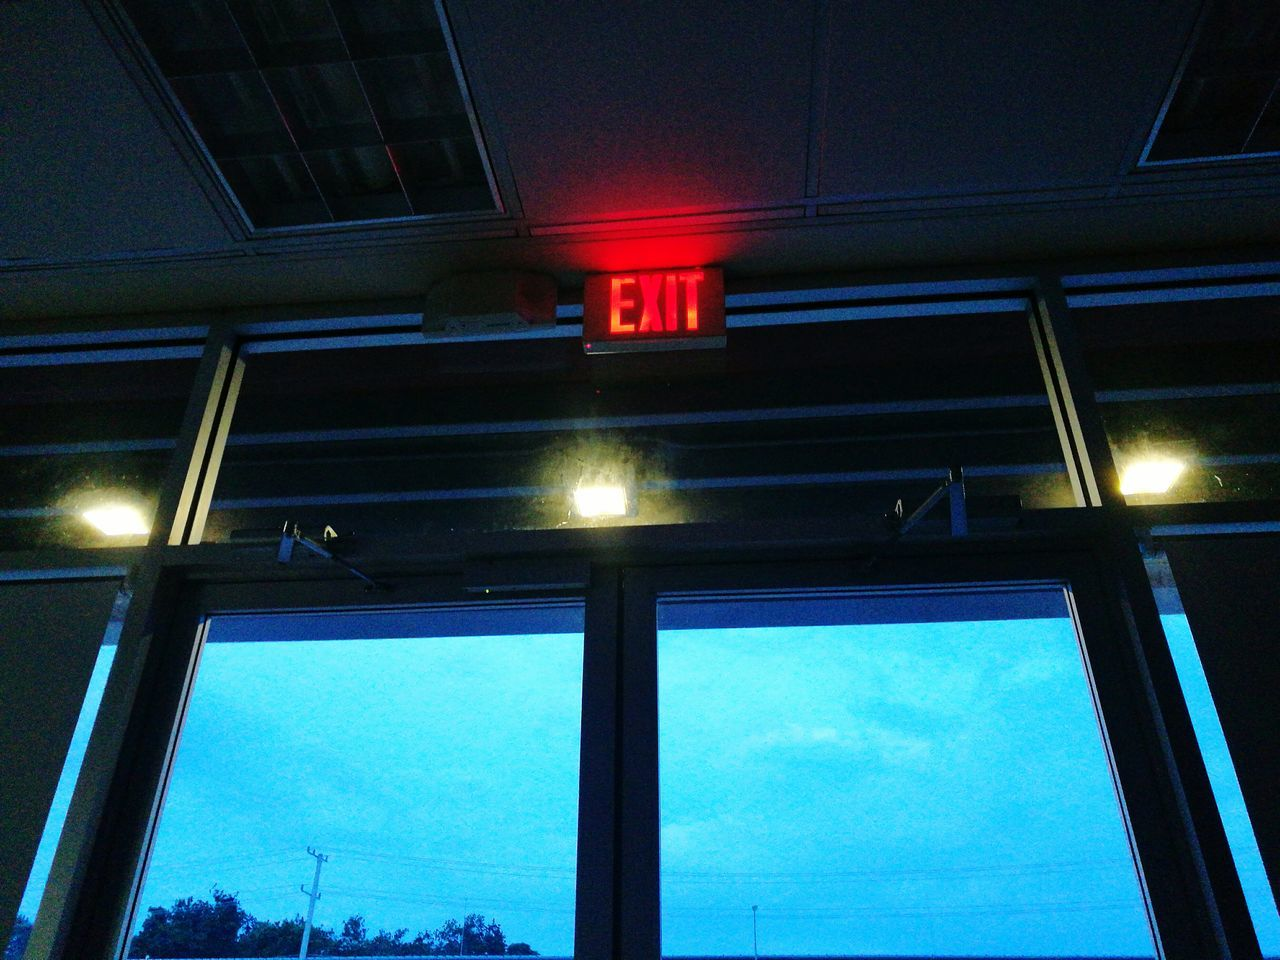 Illuminated No People Indoors  Exit Exit Sign Sky